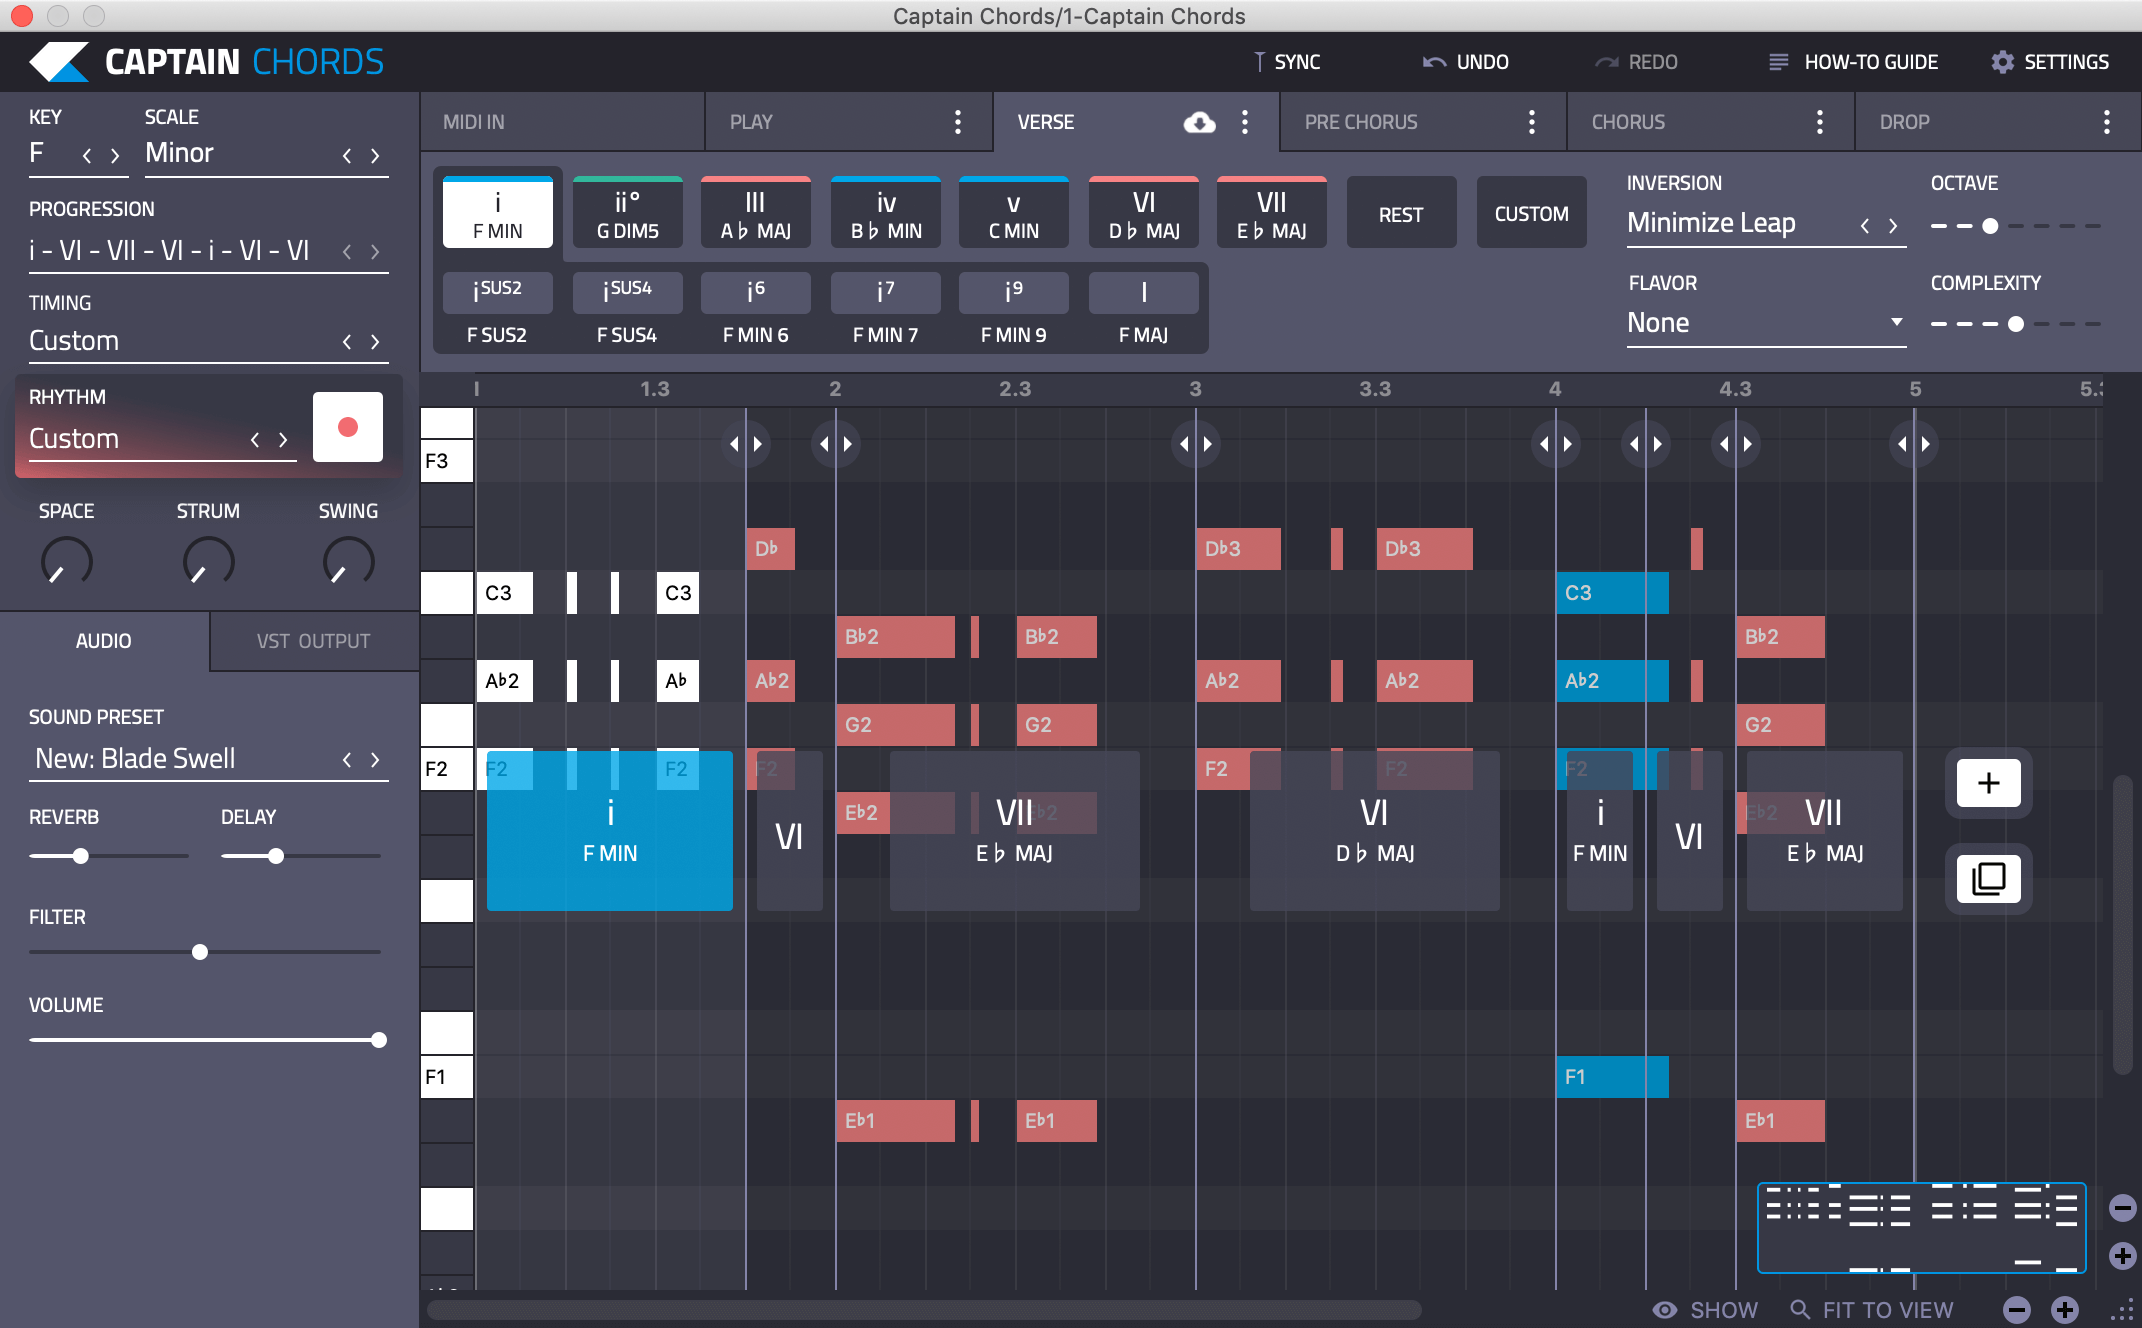 Captain Chords 3 0 Chord Progression Software VST Plugin